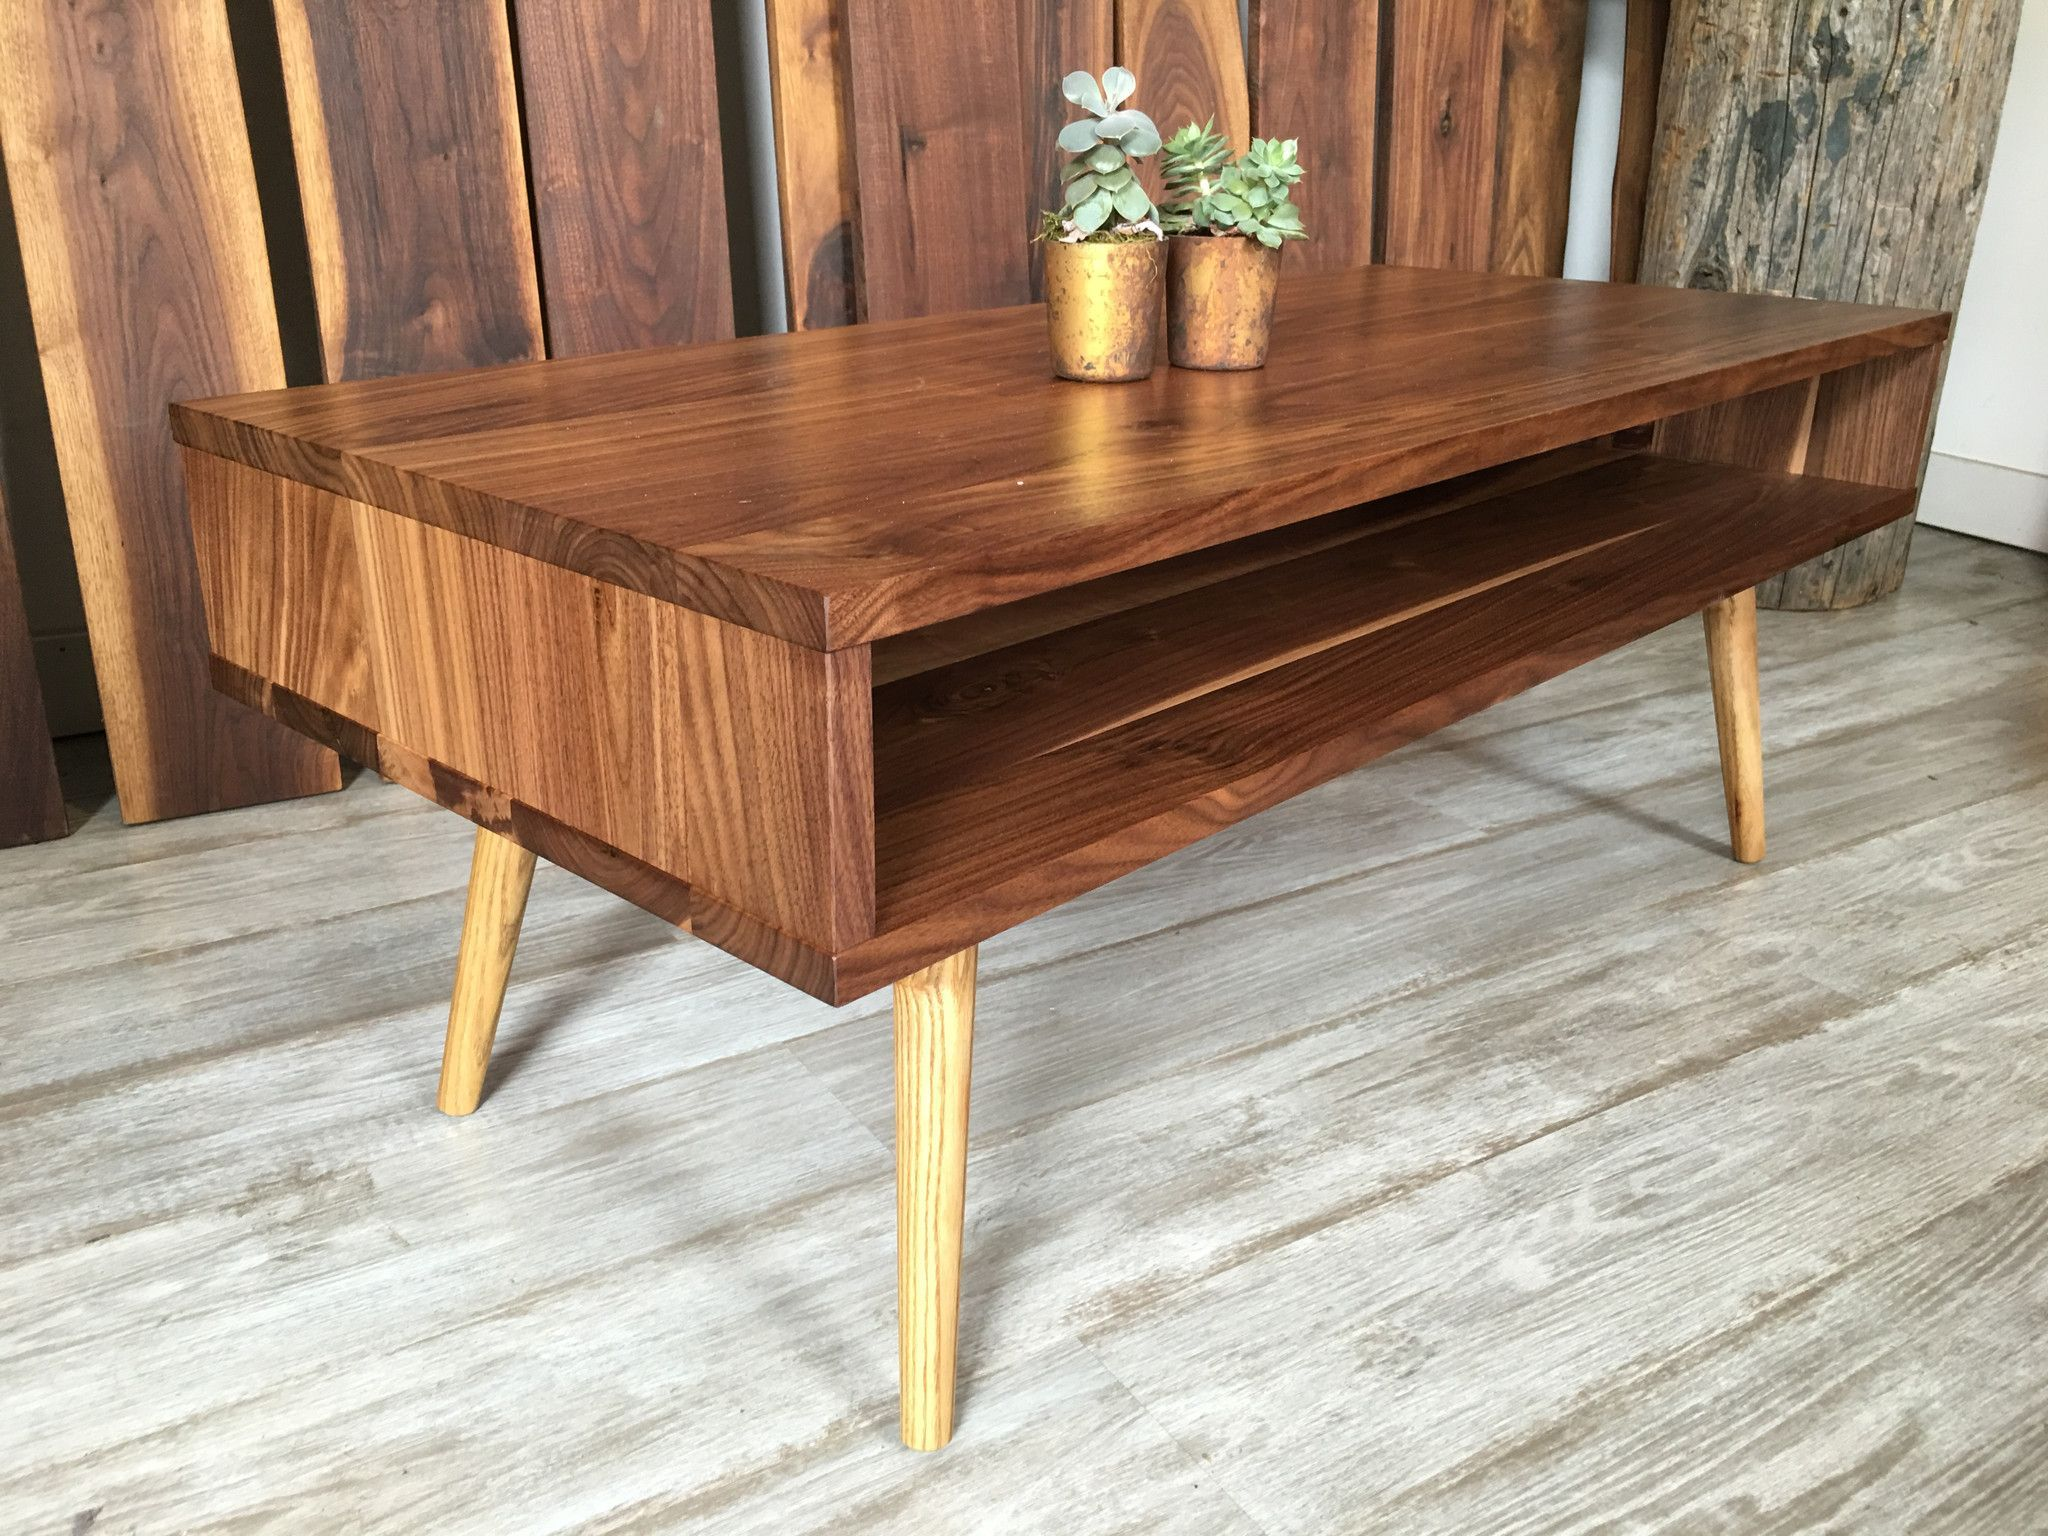 This Table Is Great For Displaying Your Favorite Coffee Books And Storing You Laptop While Keeping A Clean Top Slim Measurements Make It Good